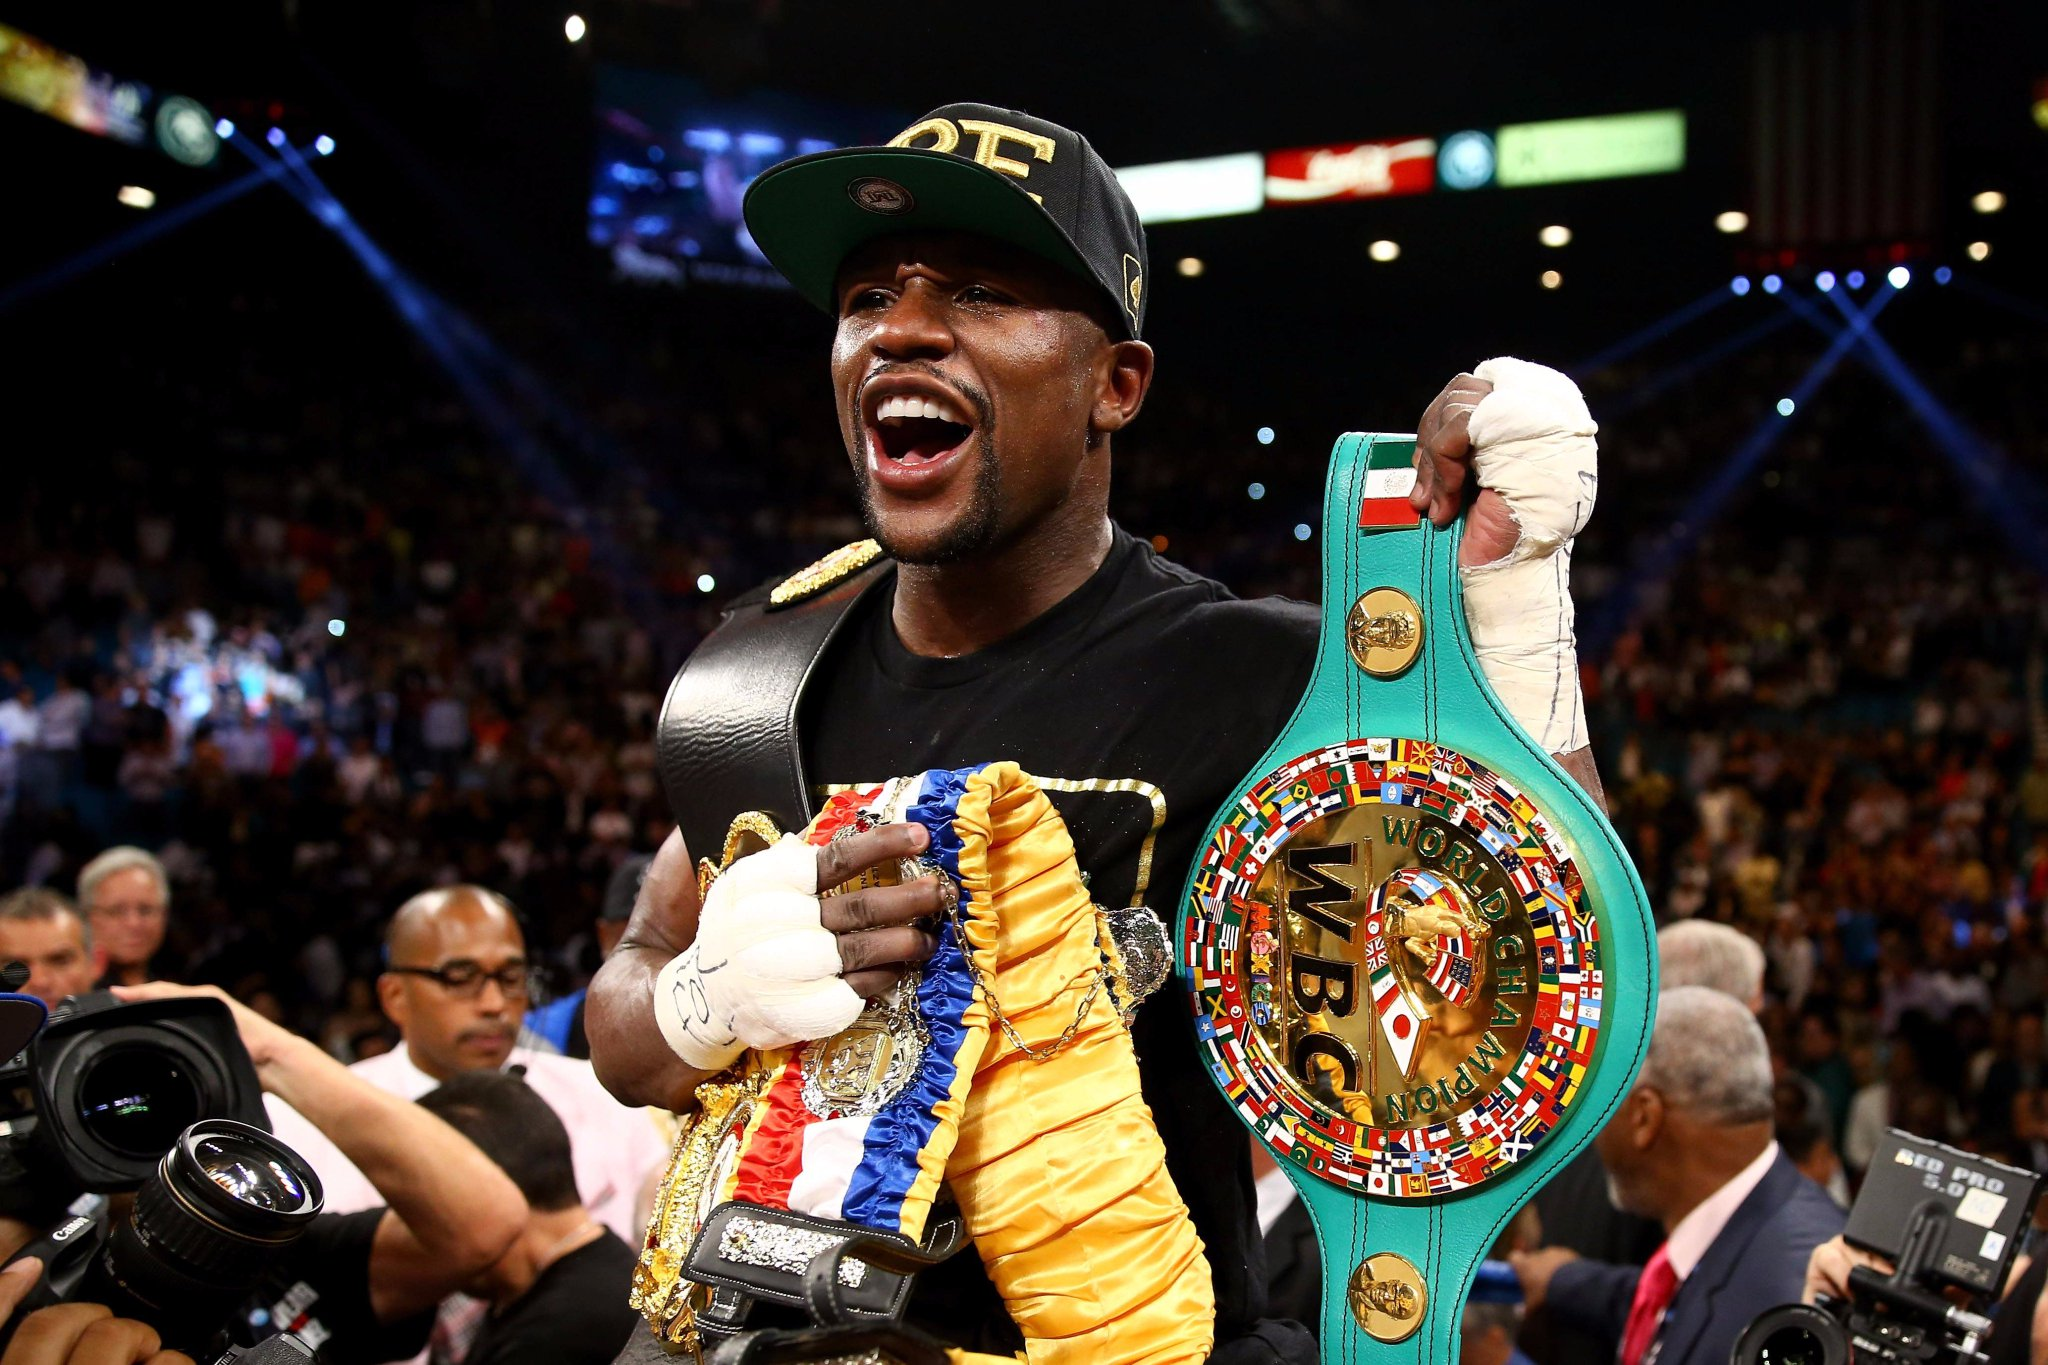 Happy Birthday to Floyd Mayweather Jr., who turns 40 today!